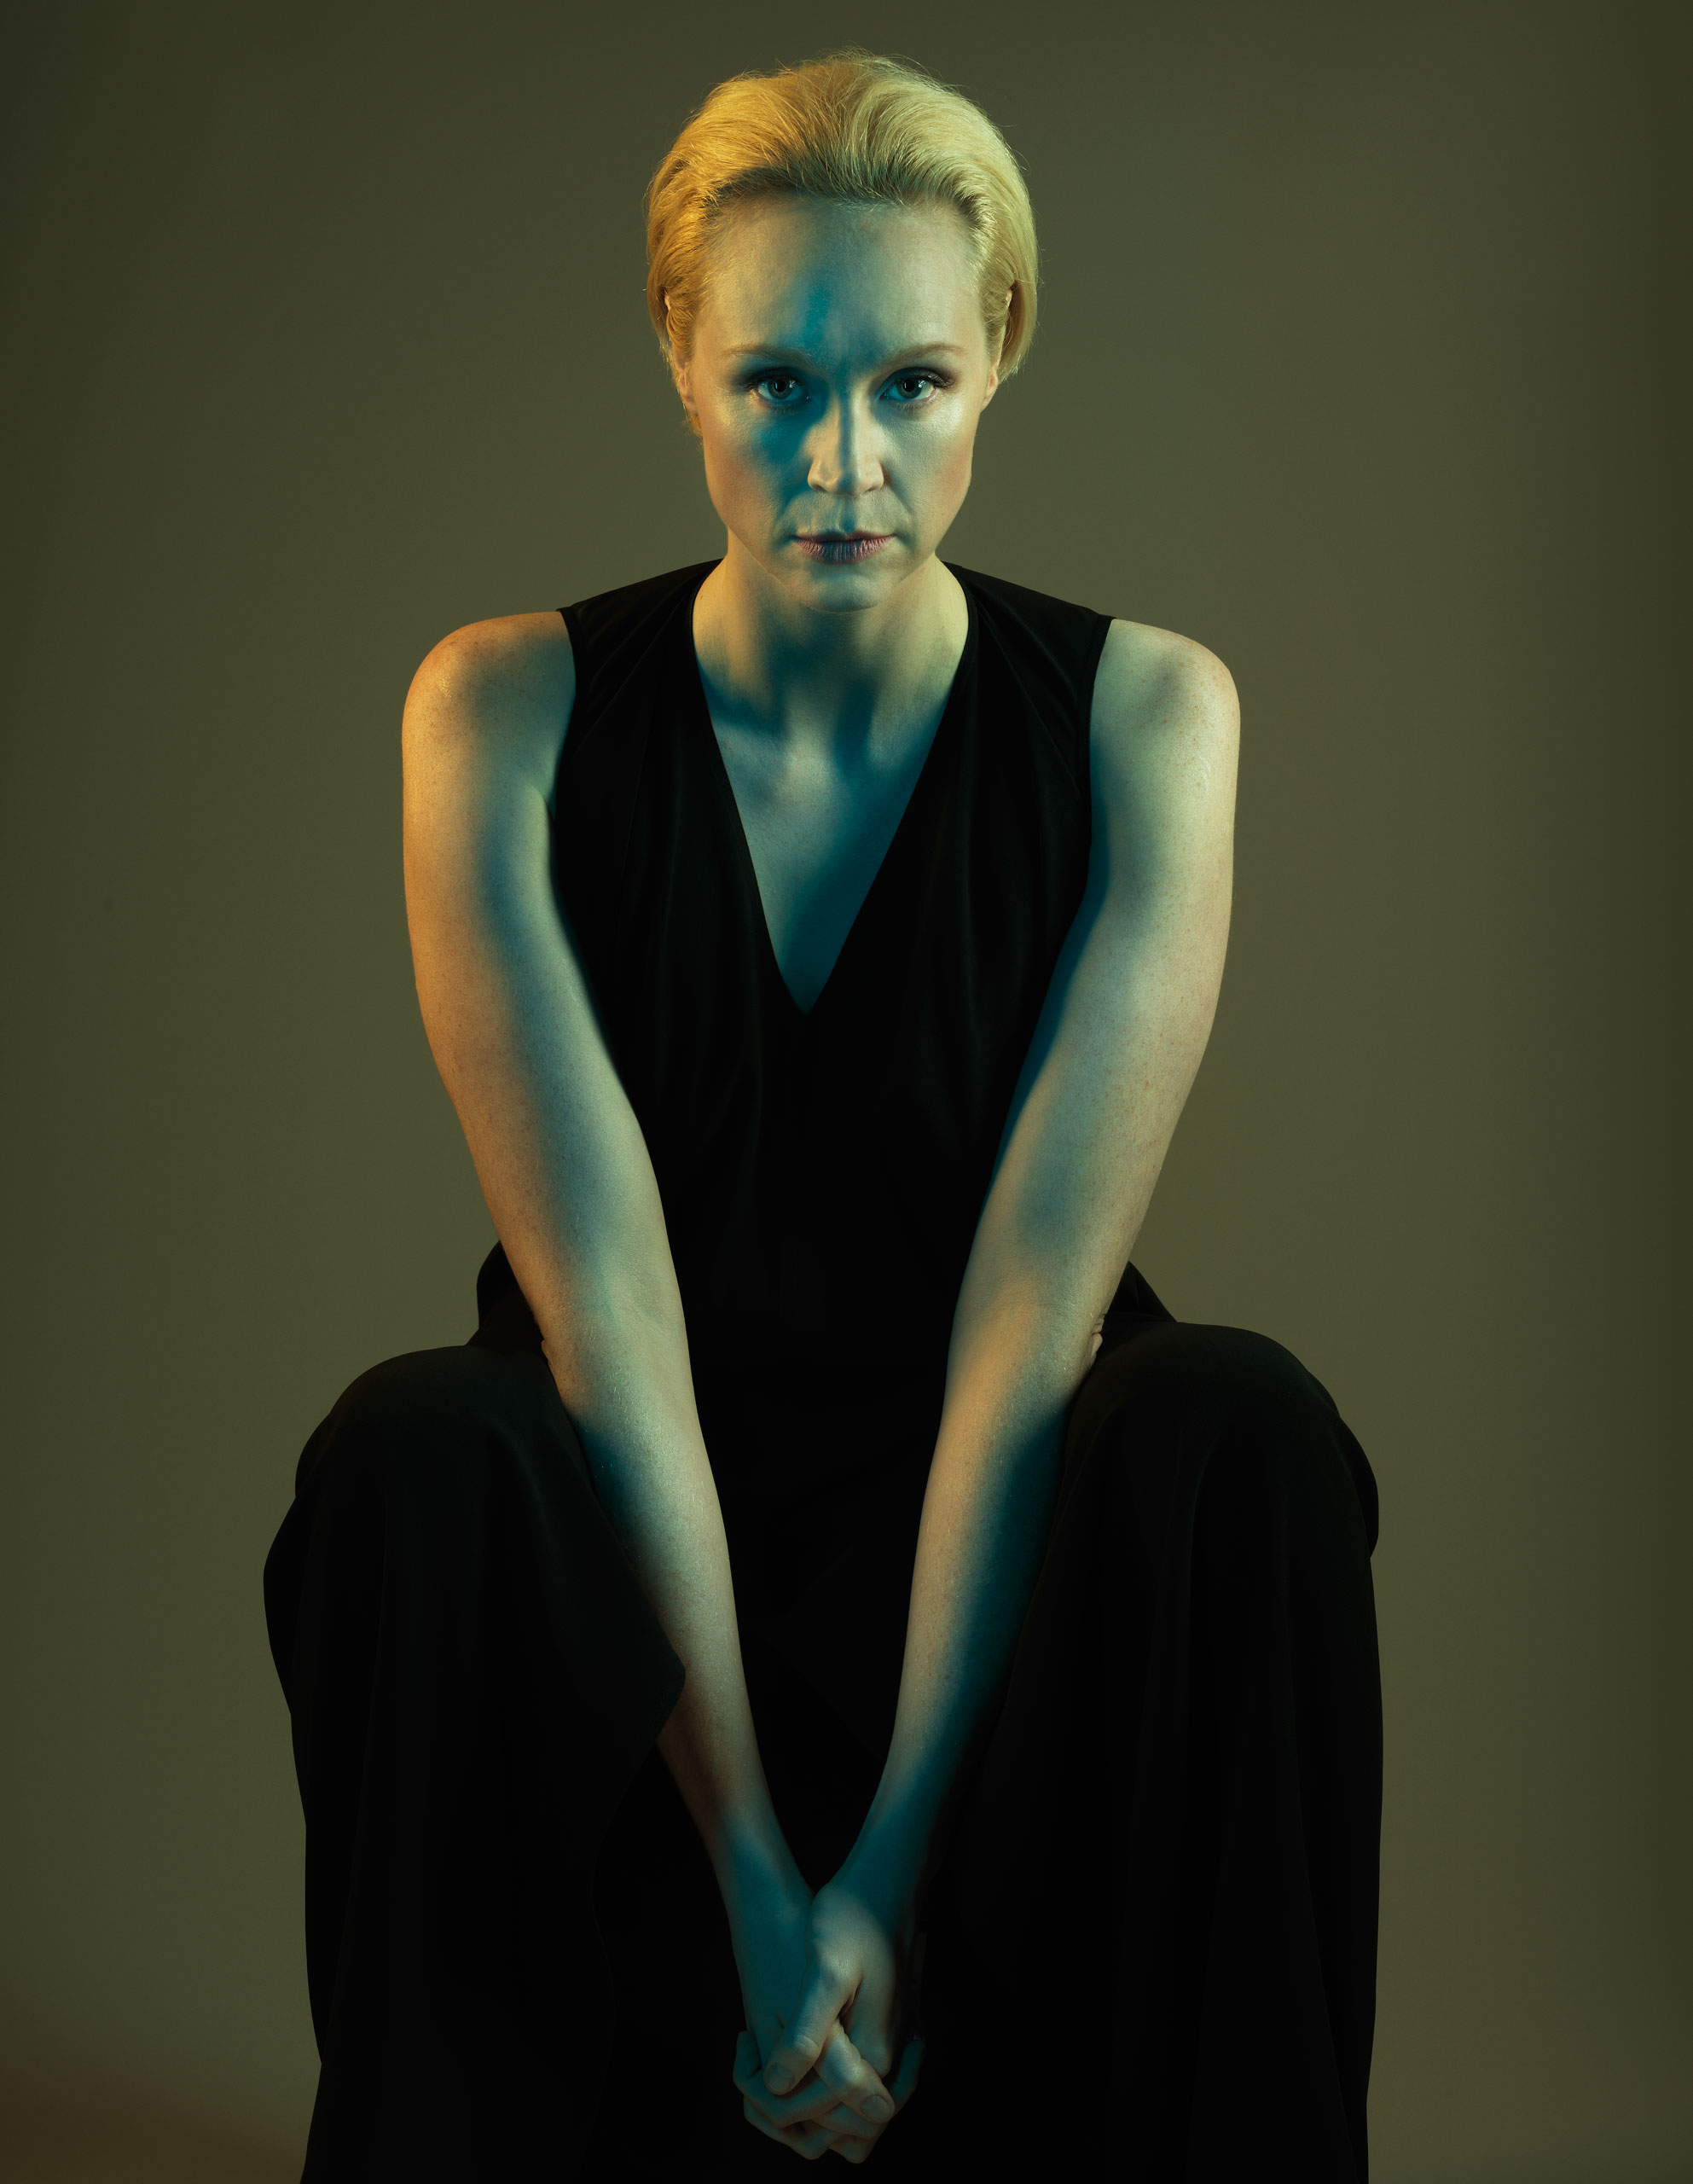 Gwendoline Christie photographed for TIME on October 29, 2015 in London.